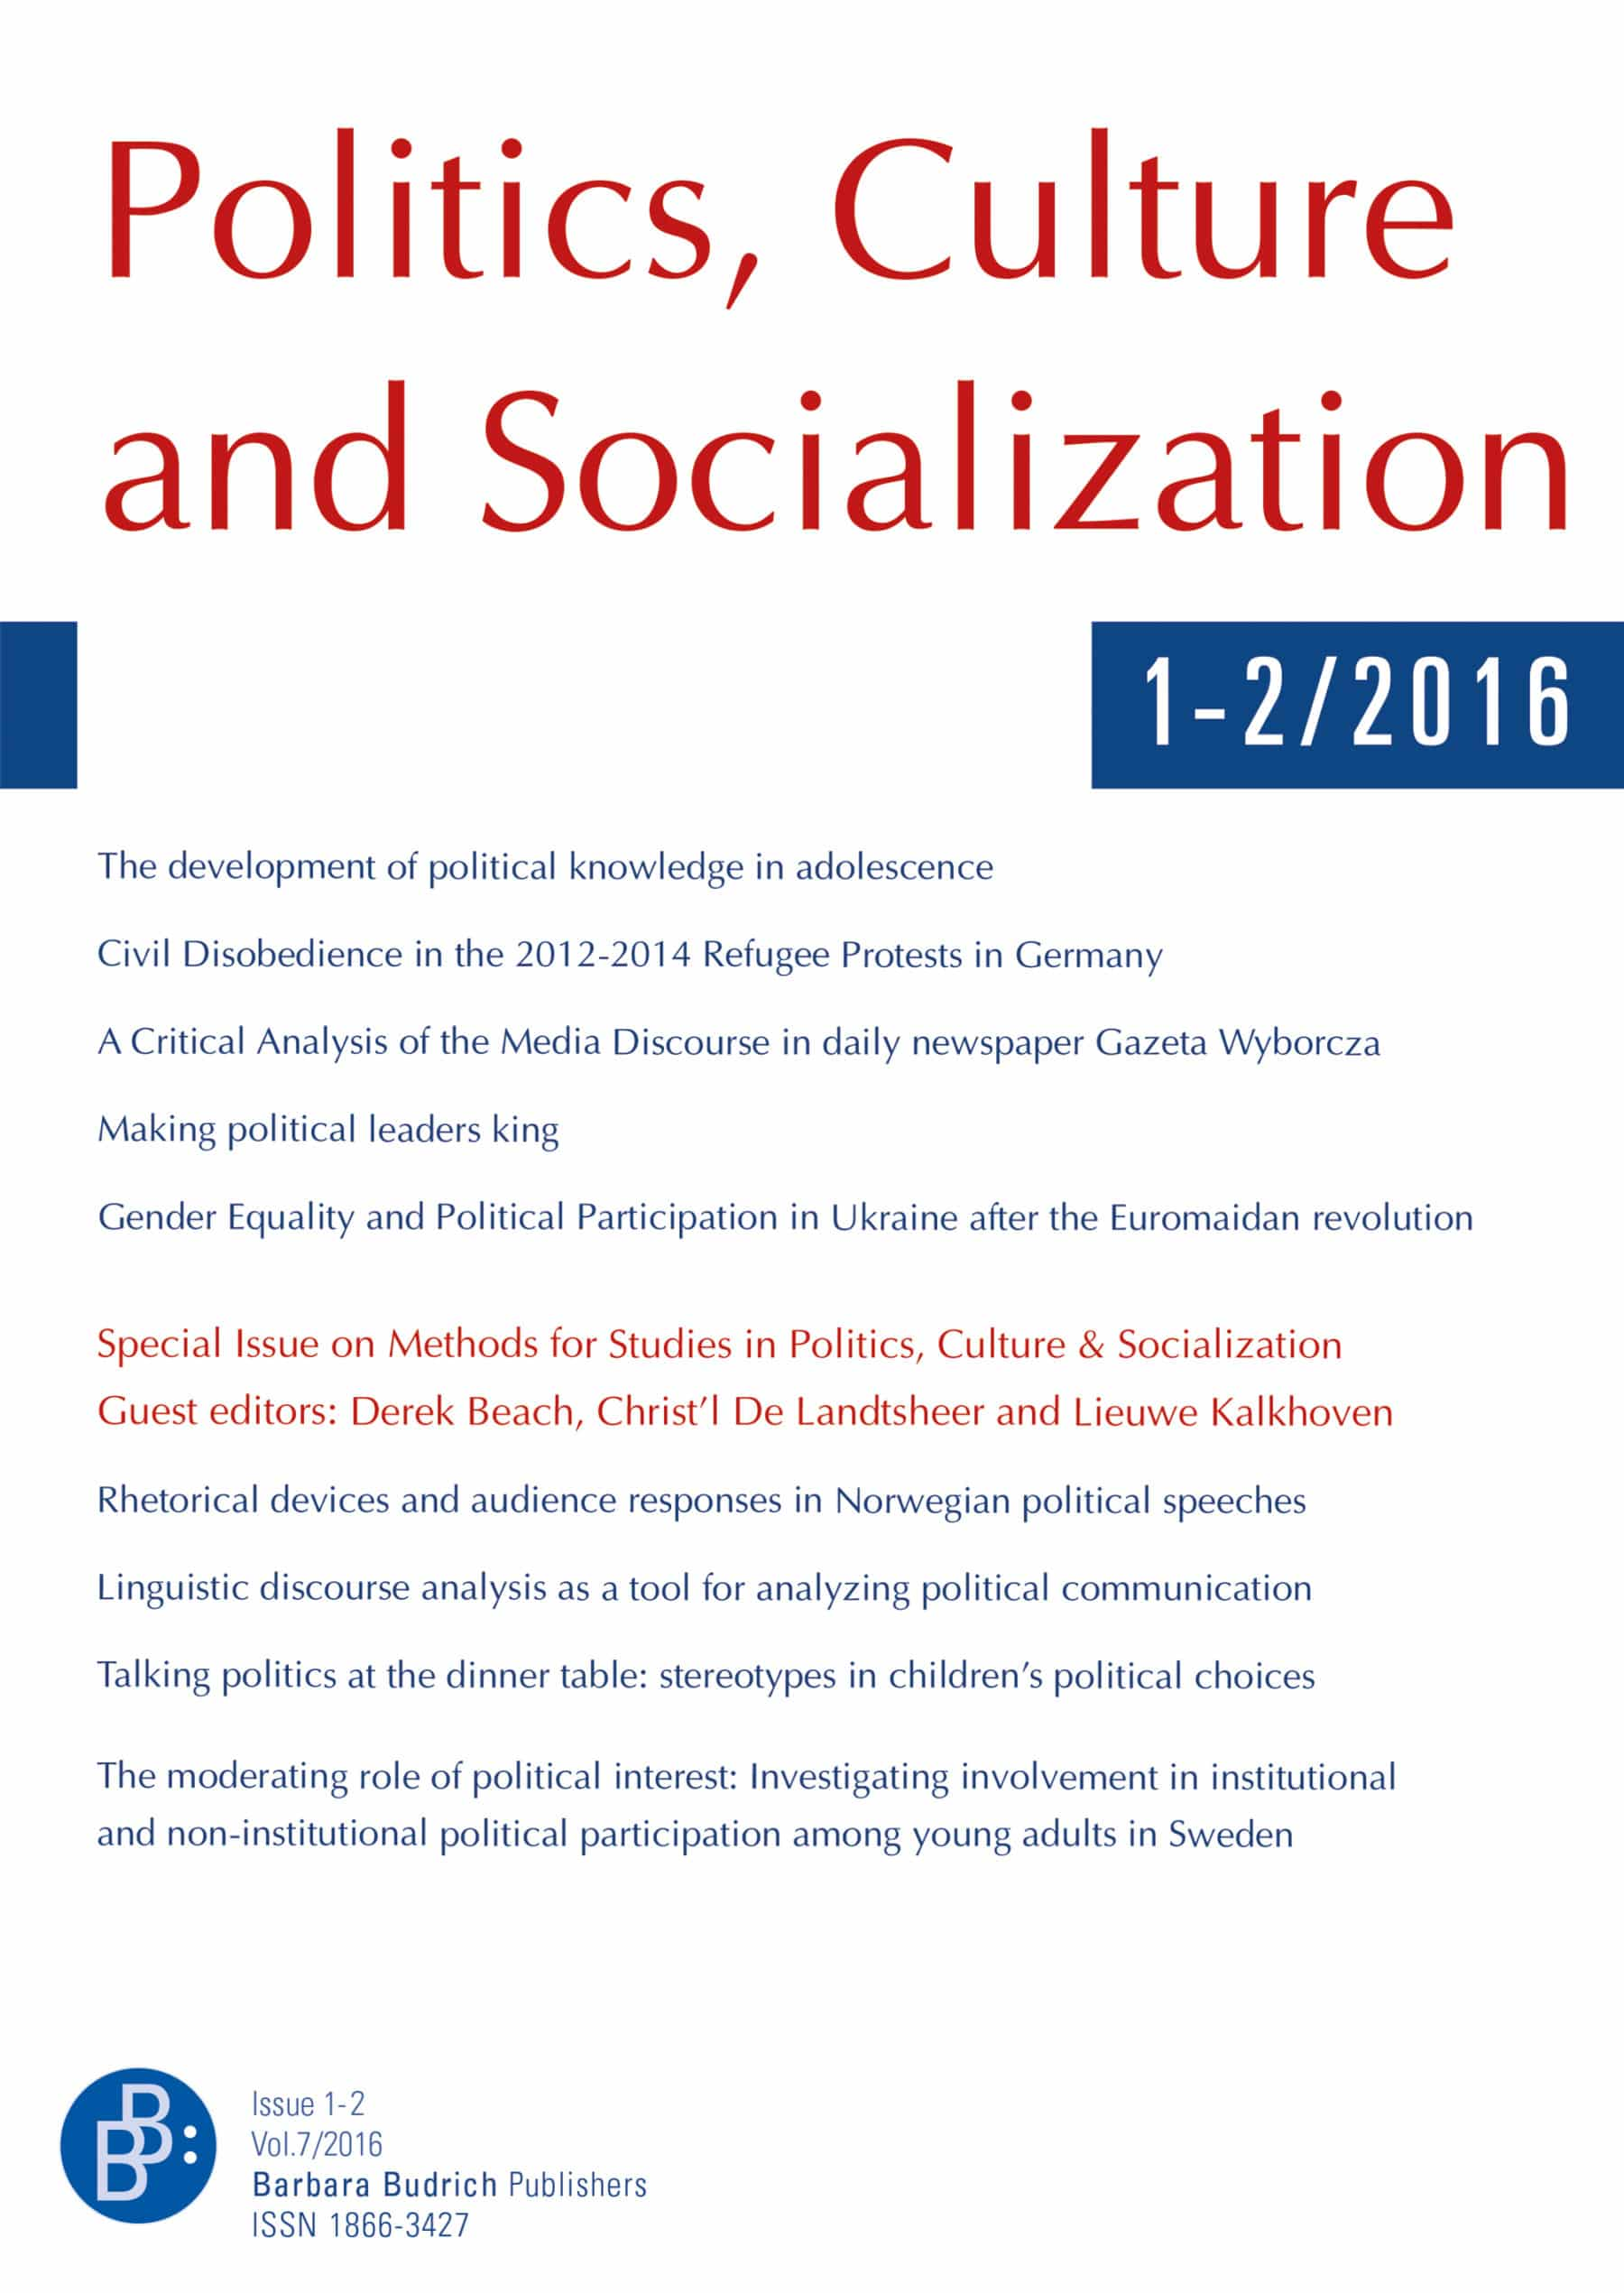 PCS 1+2-2016 | Methods for Studies in Politics, Culture & Socialization (I)